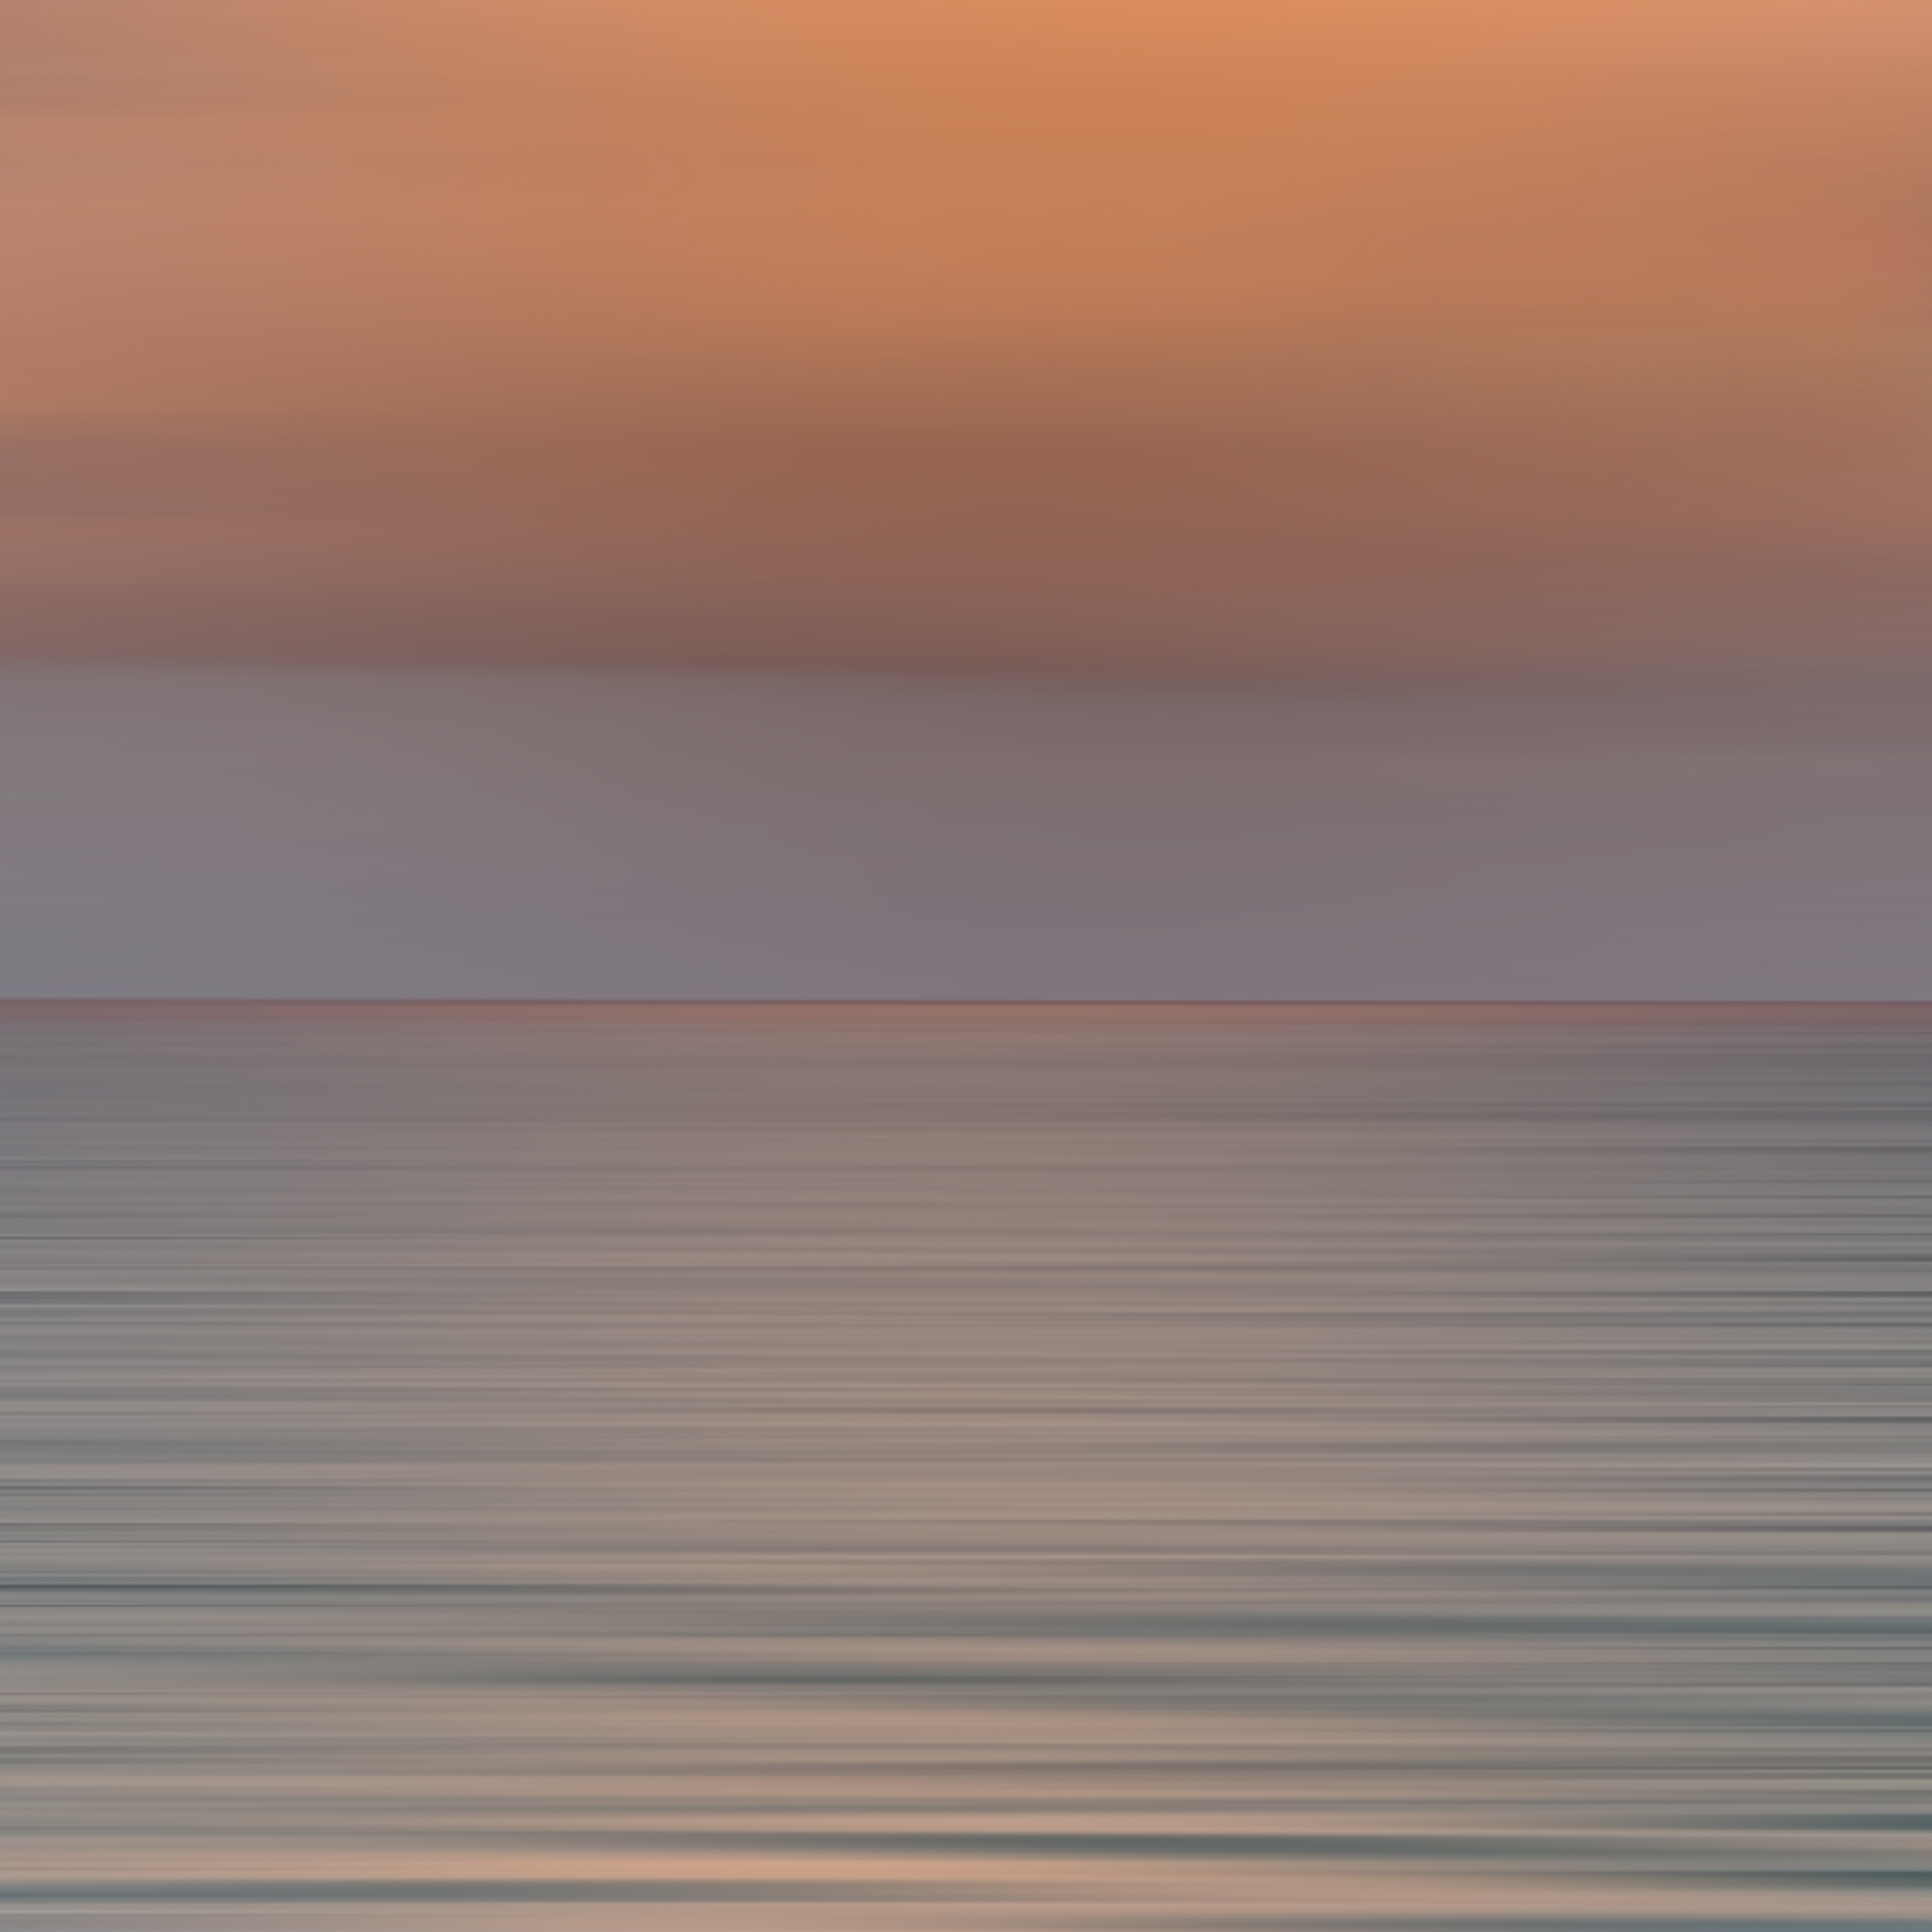 Light and Sea Dusk, 2018, photograph on plexiglass, 40 x 40 in, edition of 10, $7,500 (other sizes available, priced accordingly)